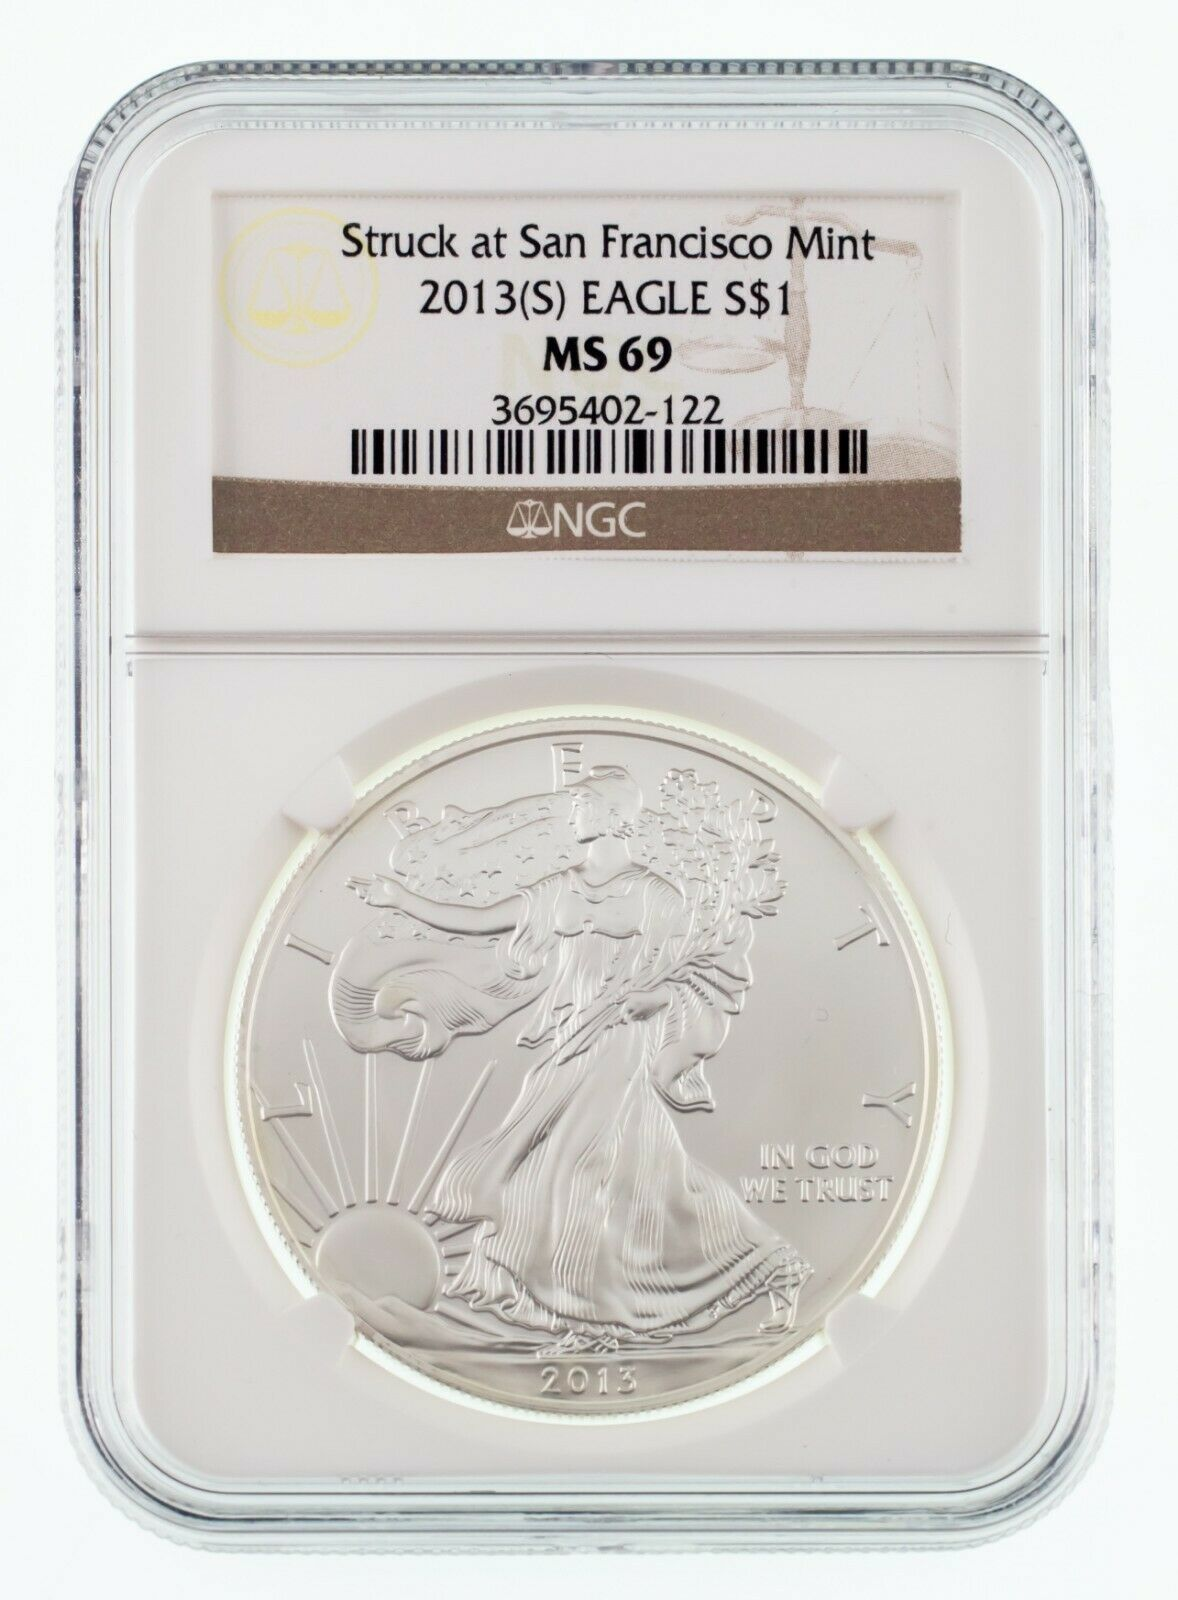 1988 NGC MS 69 $1 Silver American Eagle Uncirculated 1 oz